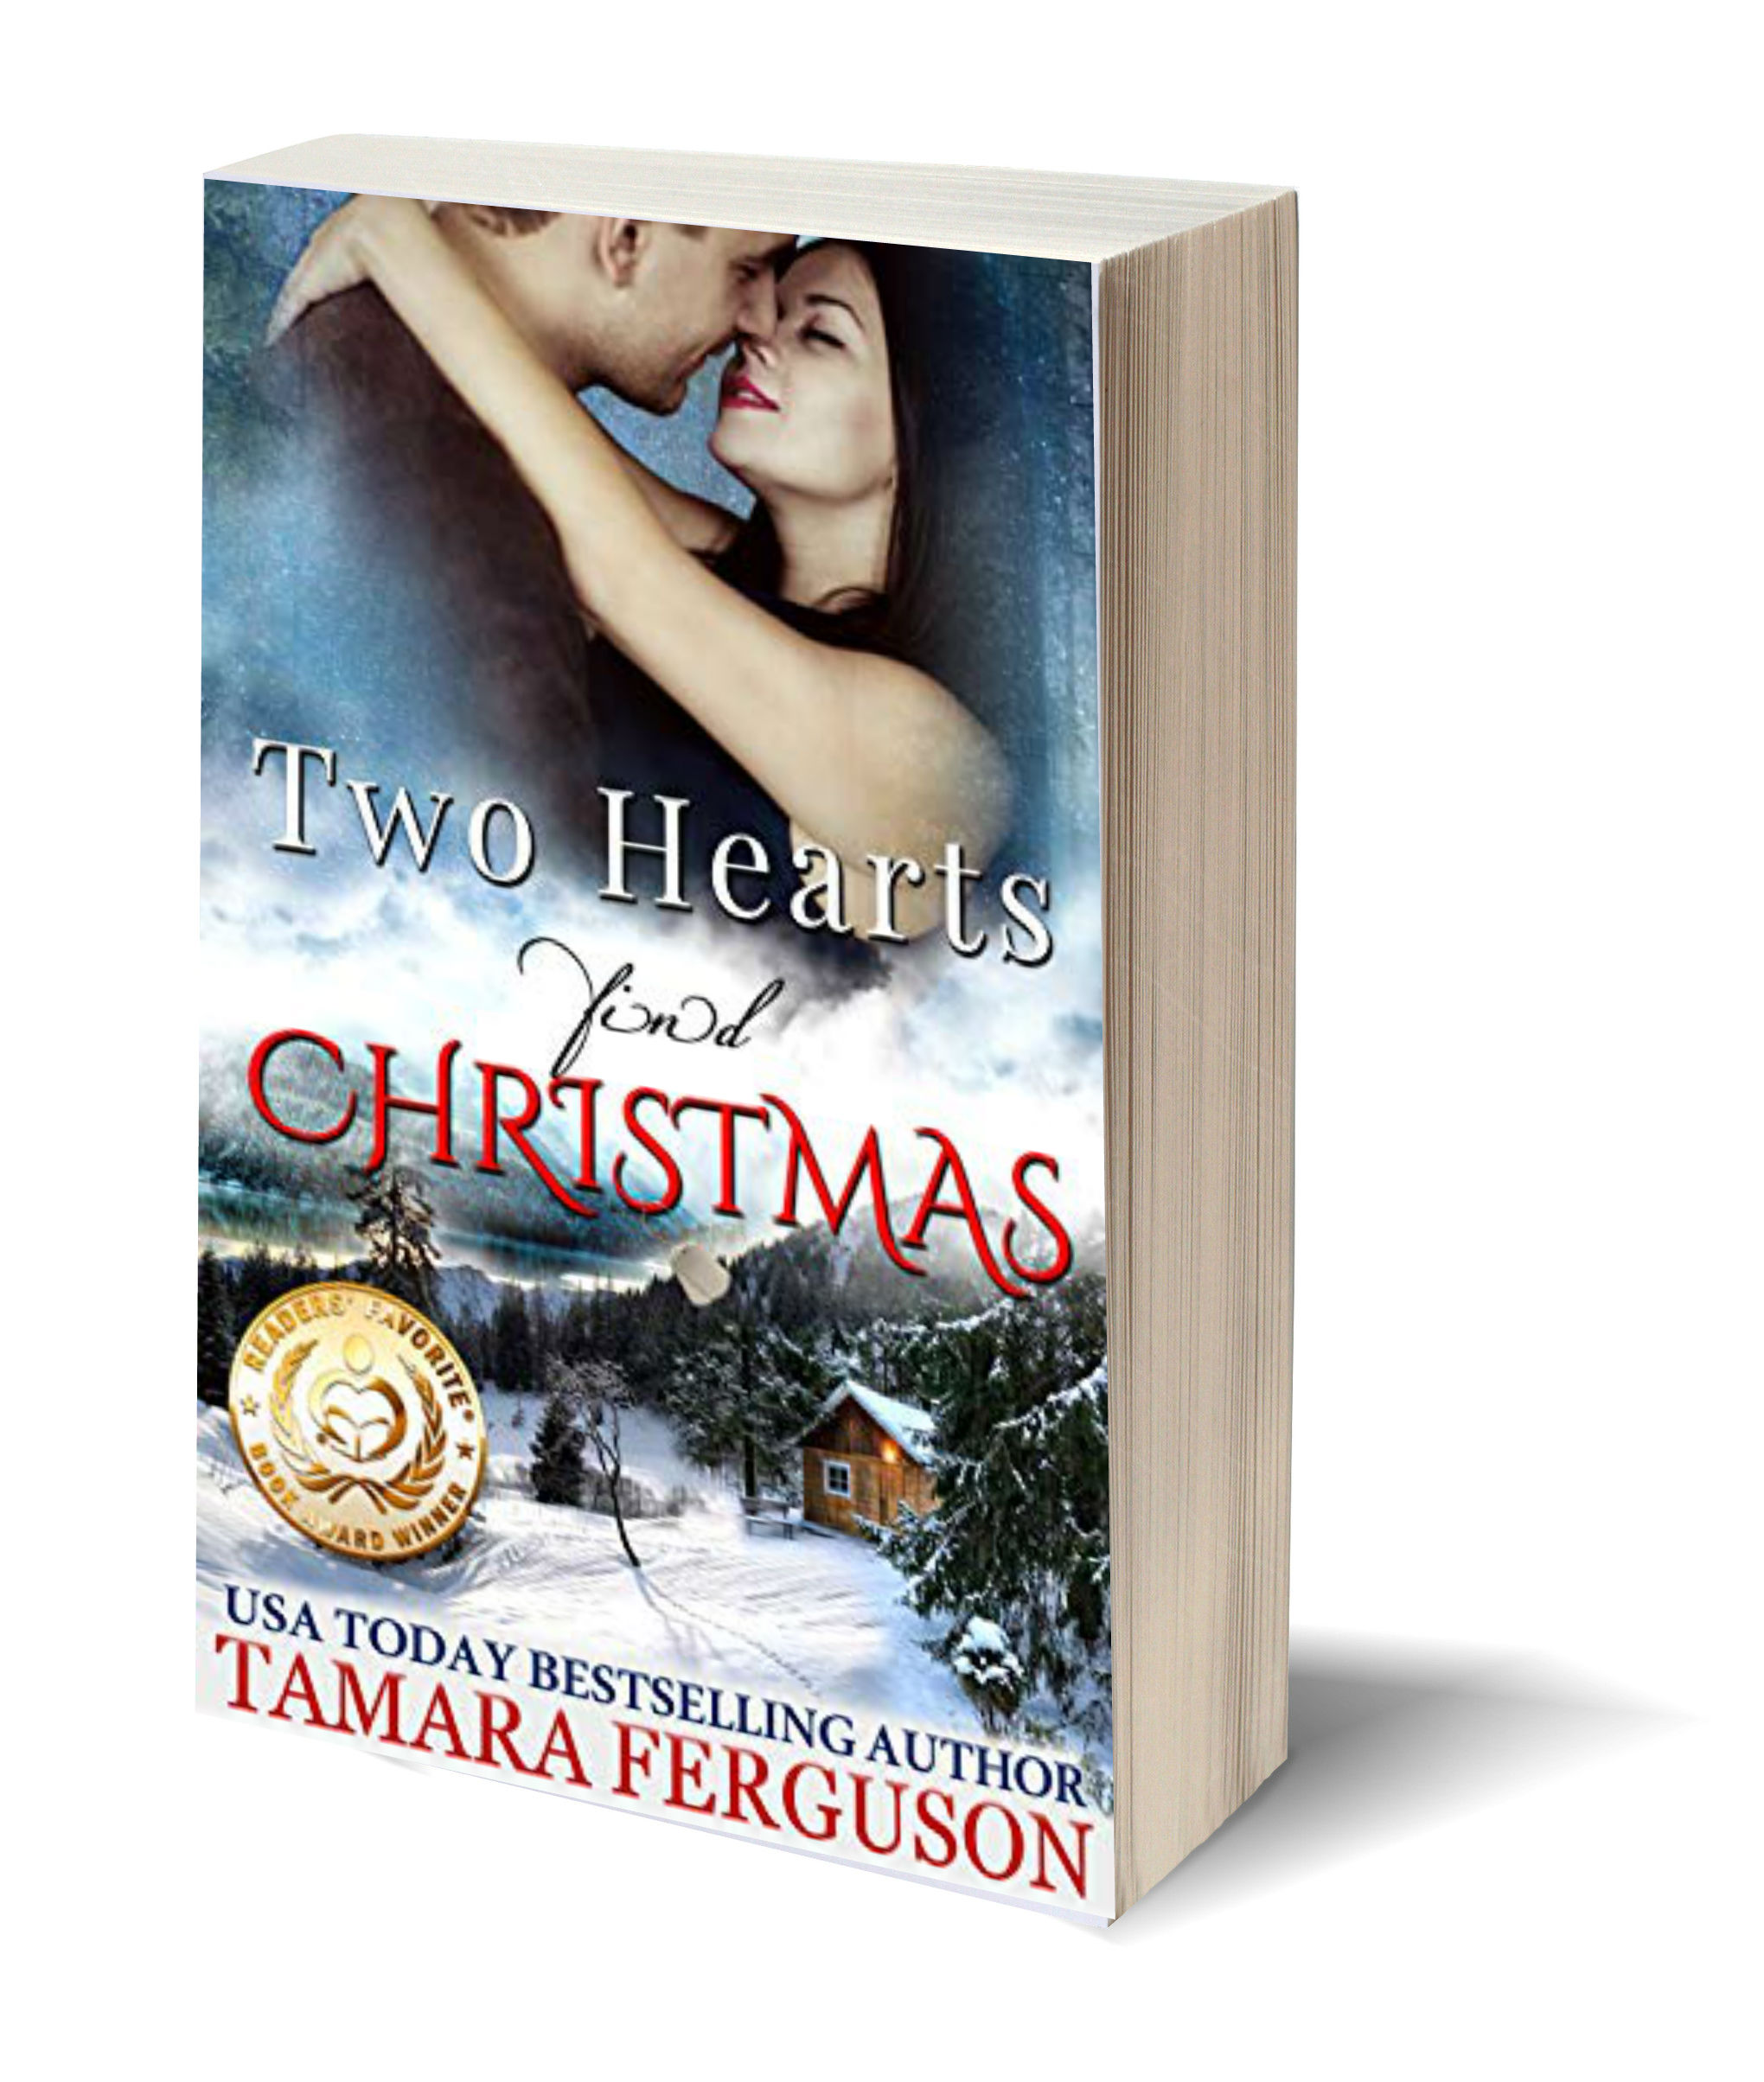 Two hearts find christmas USA 3D-Book-Template.jpg